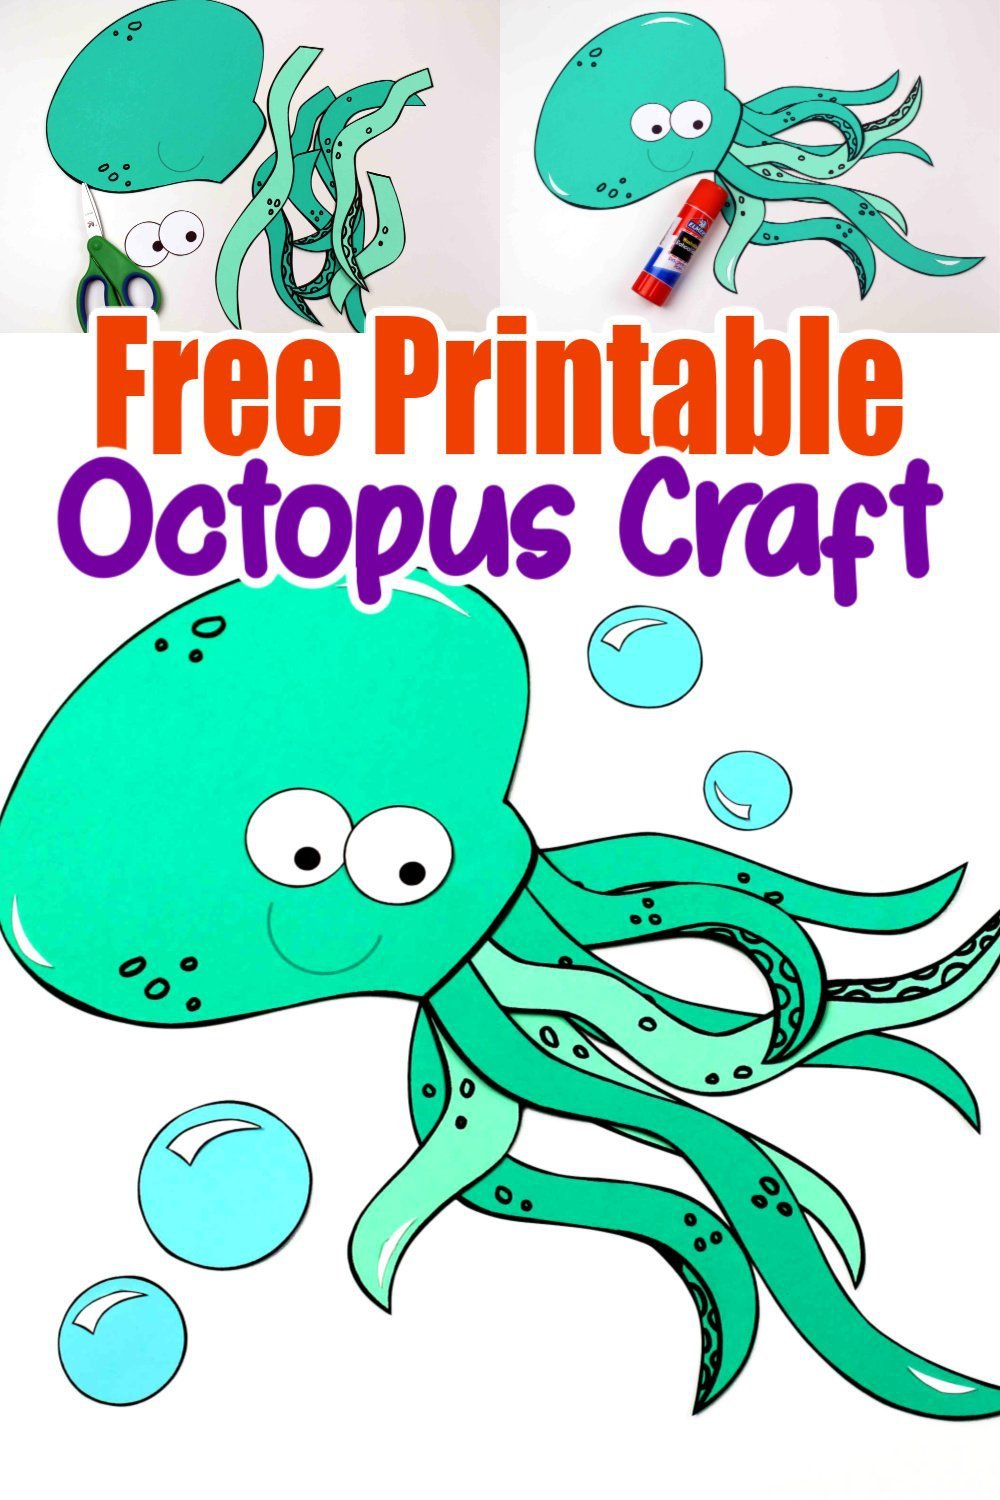 Free Printable Ocean Animal Octopus Crafts for kids of all ages, including preschoolers and toddlers